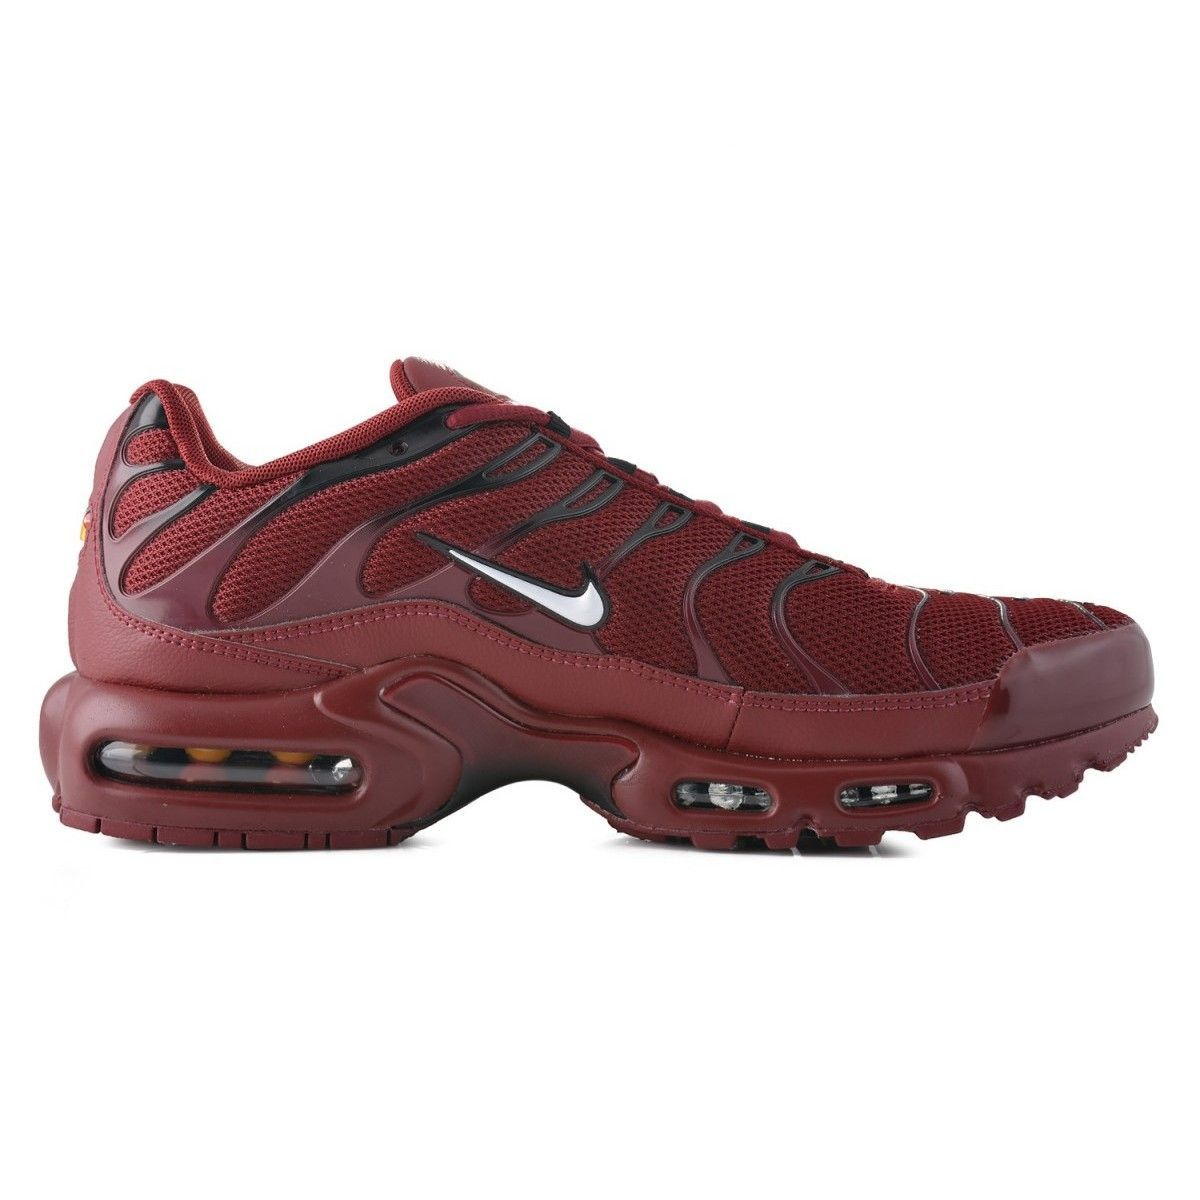 code promo 35ad7 29880 Basket Mode Air Max Plus - Taille : 44 1/2;45 1/2 en 2019 ...